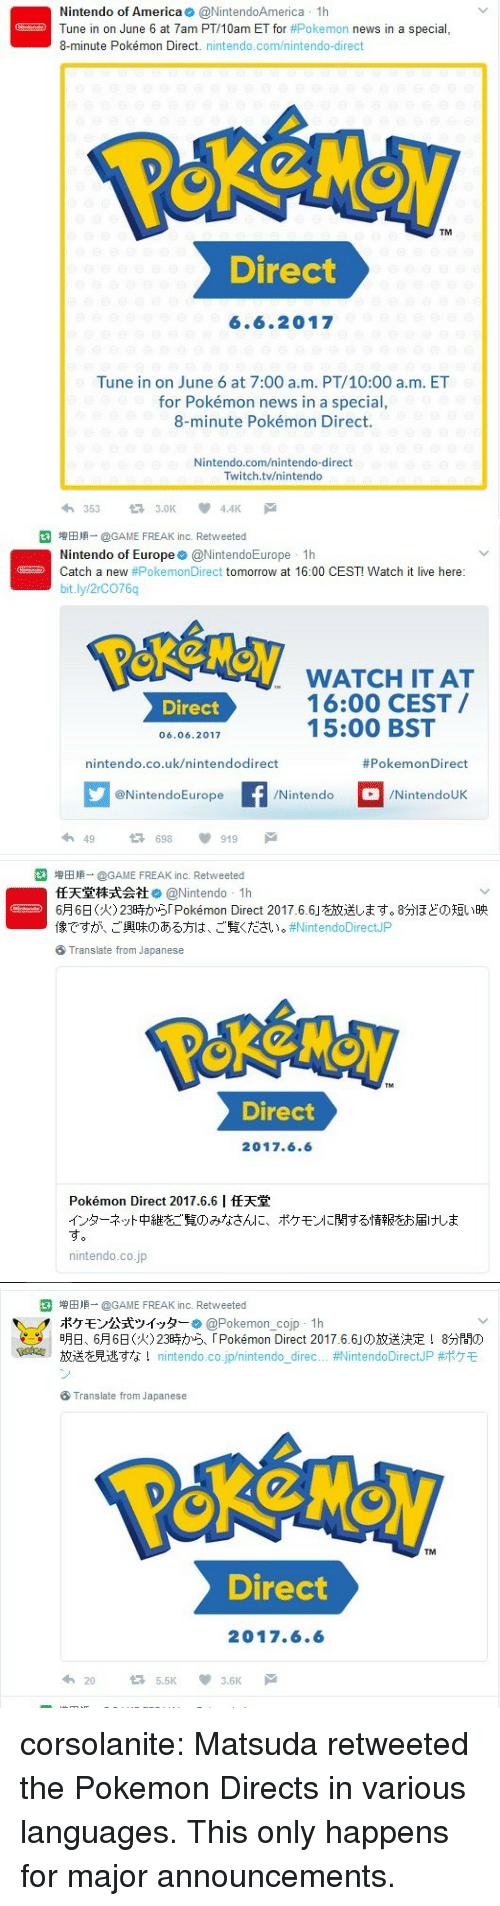 America, News, and Nintendo: Nintendo of America@NintendoAmerica 1h  Tune in on June 6 at 7am PT/10am ET for#Pokemon news in a special,  8-minute Pokémon Direct. nintendo.com/nintendo-direct  TM  Direct  6.6.2017  Tune in on June 6 at 7:00 a.m. PT/10:00 a.m. ET  for Pokémon news in a special,  8-minute Pokémon Direct.  Nintendo.com/nintendo-direct  Twitch.tv/nintendo  3533.OK4.4K   园増田順_ @GAME FREAK inc. Retweeted  Nintendo of Europe@NintendoEurope 1h  Catch a new #PokemonDirect tomorrow at 16:00 CEST! Watch it live here:  bit.ly/2rCO76q  SWATCH IT AT  Diree 16:00 CEST  15:00 BST  06.06.2017  nintendo.co.uk/nintendodirect  #PokemonDirect  @NintendoEurope  /Nintendo  /NintendoUK  わ49 698 919 戸   园増田順_ @GAME FREAK inc. Retweeted  任天堂株式会社 @Nintendo- lh  明6日(火) 23時から「Pokémon Direct 2017.6.6」を放送します。8分ほどの短い映  像ですが、ご興味のある方は、ご覧ください。#NintendoDirectJP  ⑤ Translate from Japanese  Direct  2017.6.6  Pokémon Direct 2017.6.6 |任天堂  インターネット中継をご覧のみなさんに、ポケモンに関する情報をお届けしま  す  nintendo.co.jp   园  増田順-@GAME FREAK inc. Retweeted  ポケモン公式ツイッター. @Pokemon-cop-1 h  明日、6月6日(火)23時から「Pokémon Direct 2017.6.6」の放送決定! 8分間の  放送を見逃すな! nintendo.co.jp/nintendo direc.. #NintendoDirectJP#ポケモ  ,  9  uma  ⑤ Translate from Japanese  TM  Direct  2017.6.6  20 5.5K 3.6K戸 corsolanite:  Matsuda retweeted the Pokemon Directs in various languages. This only happens for major announcements.